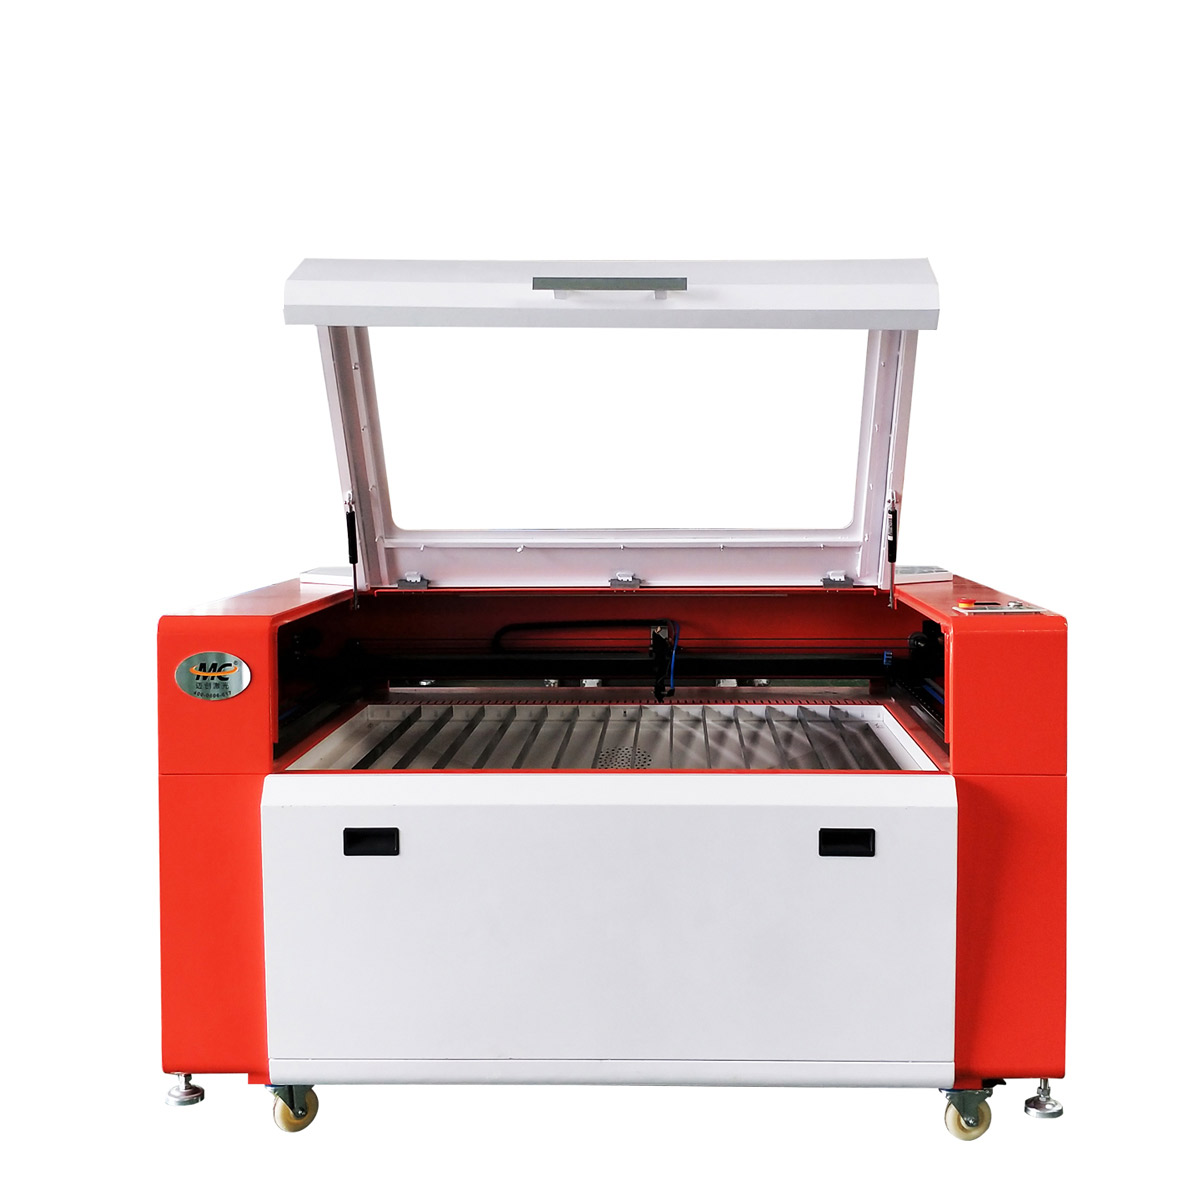 Overview of the Laser Cutting Machines Market